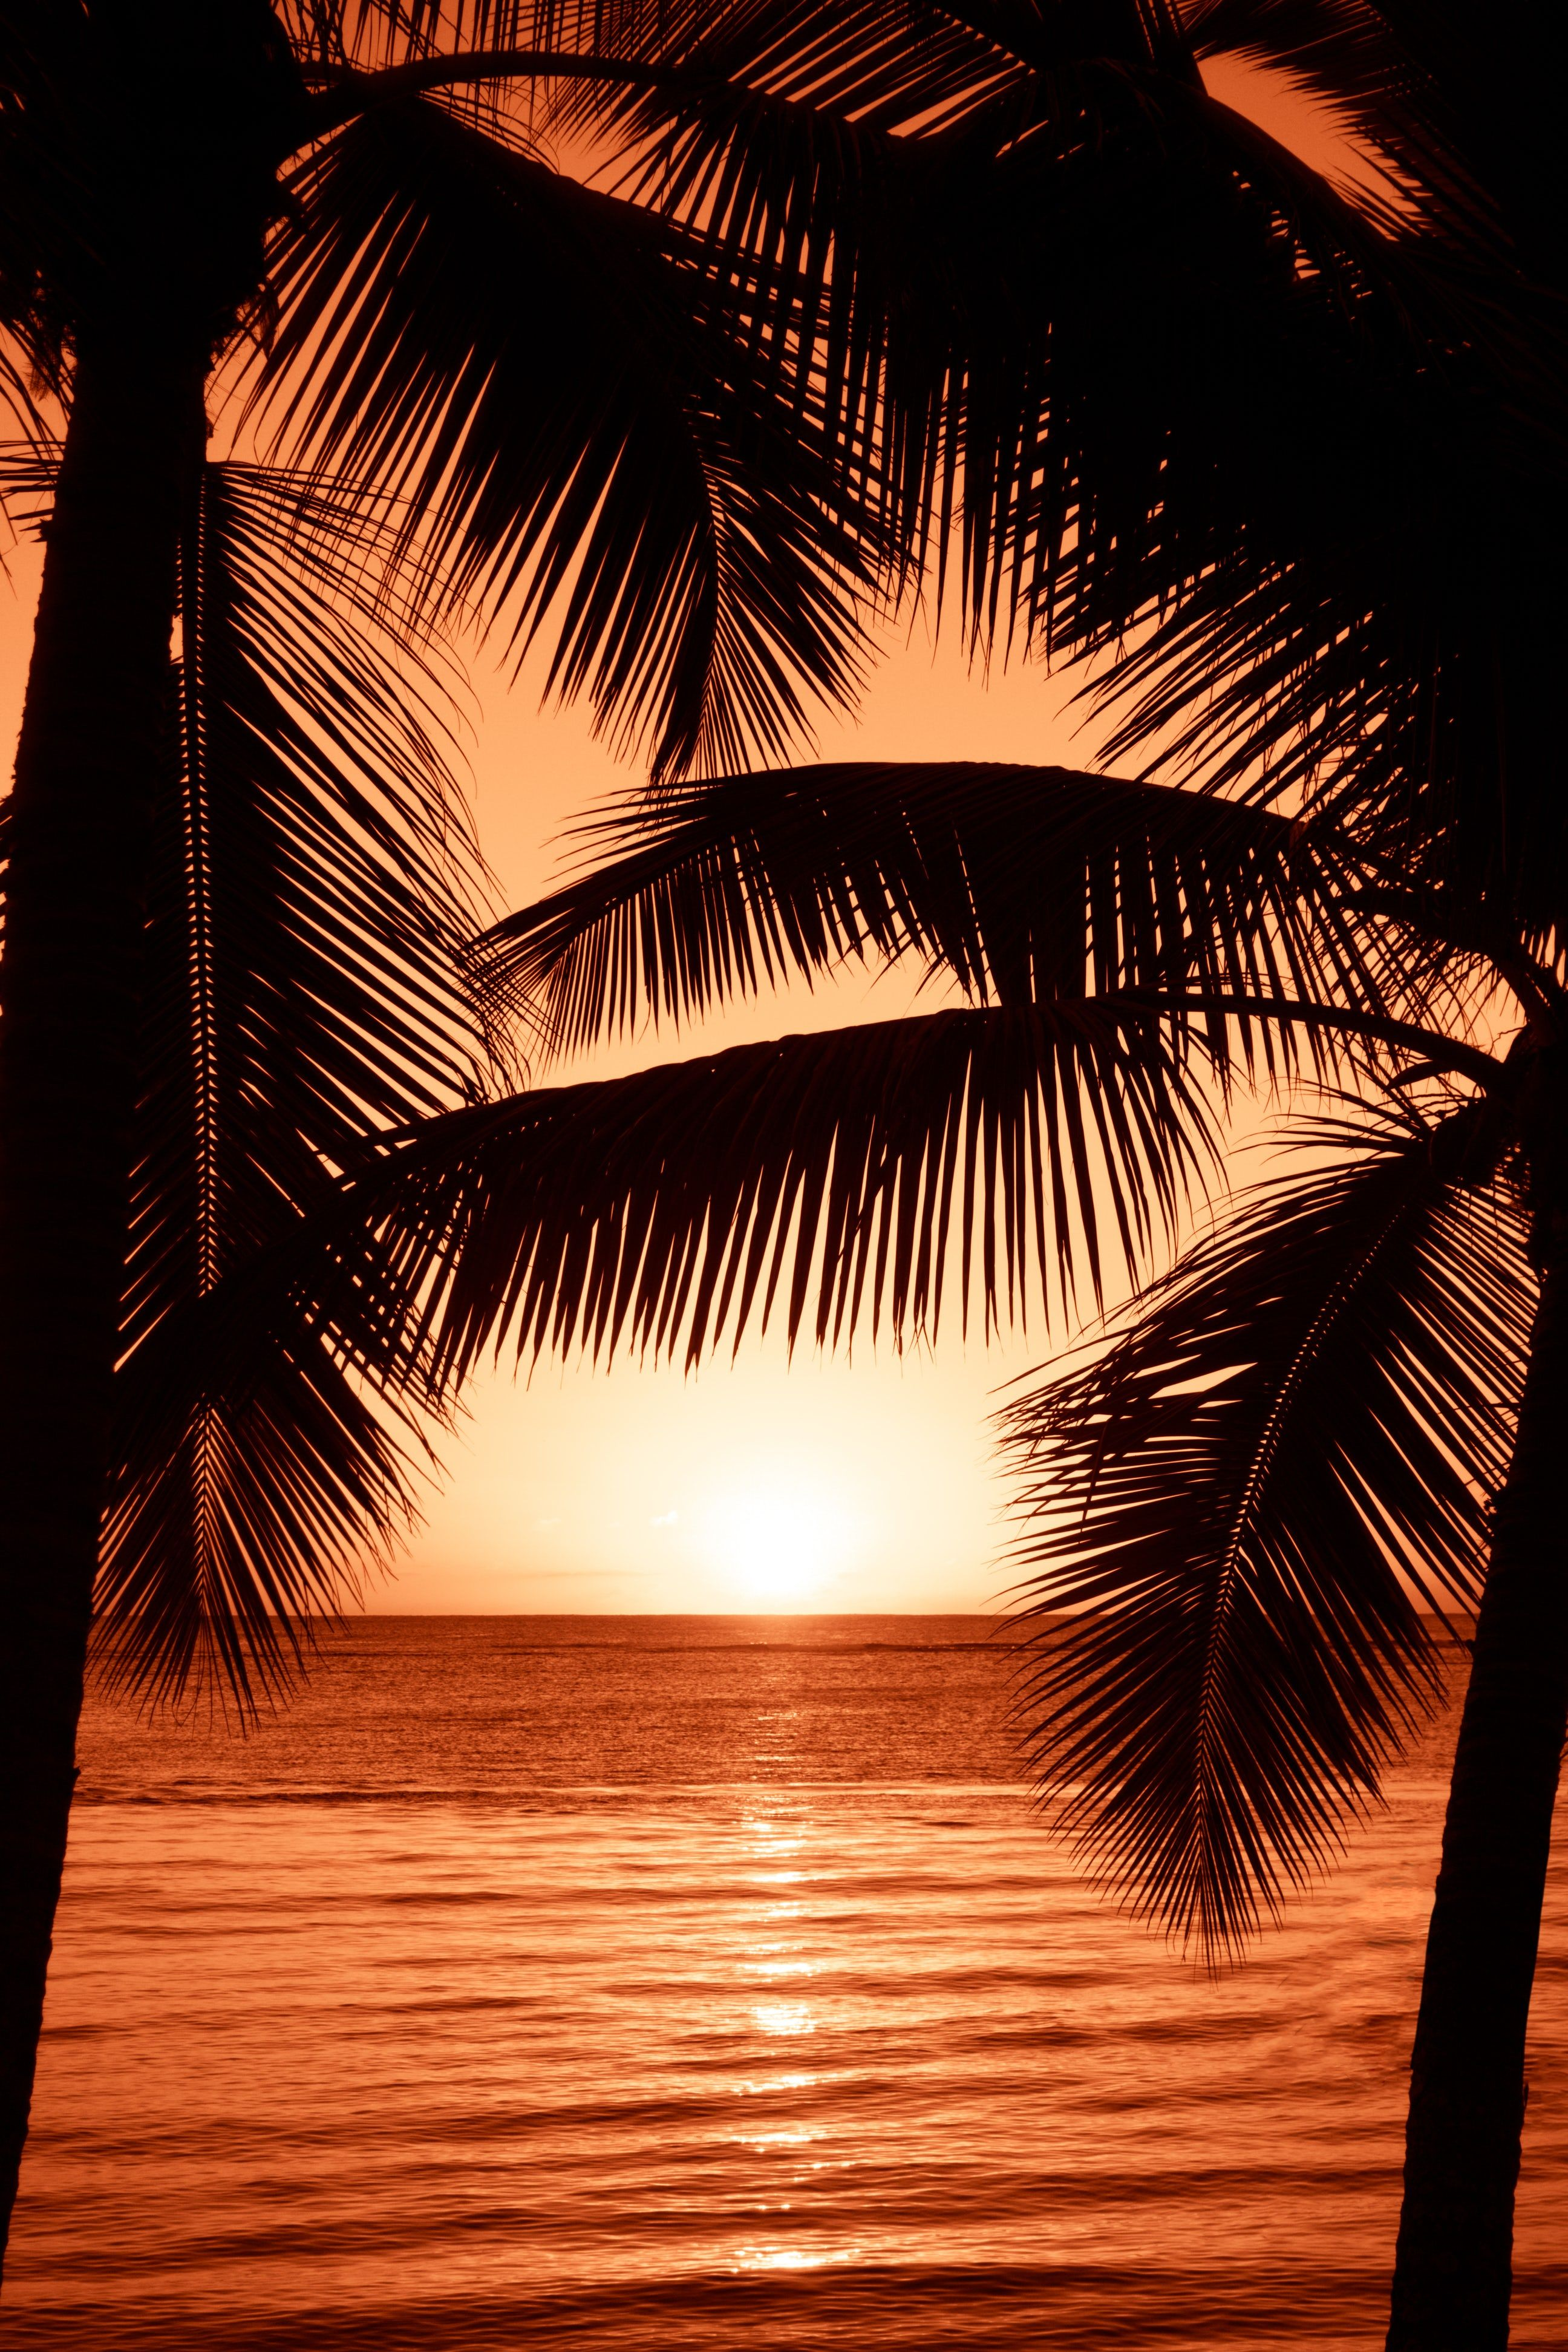 Silhouette Photography Of Two Coconut Trees Near Body Water During Golden Hour Richard